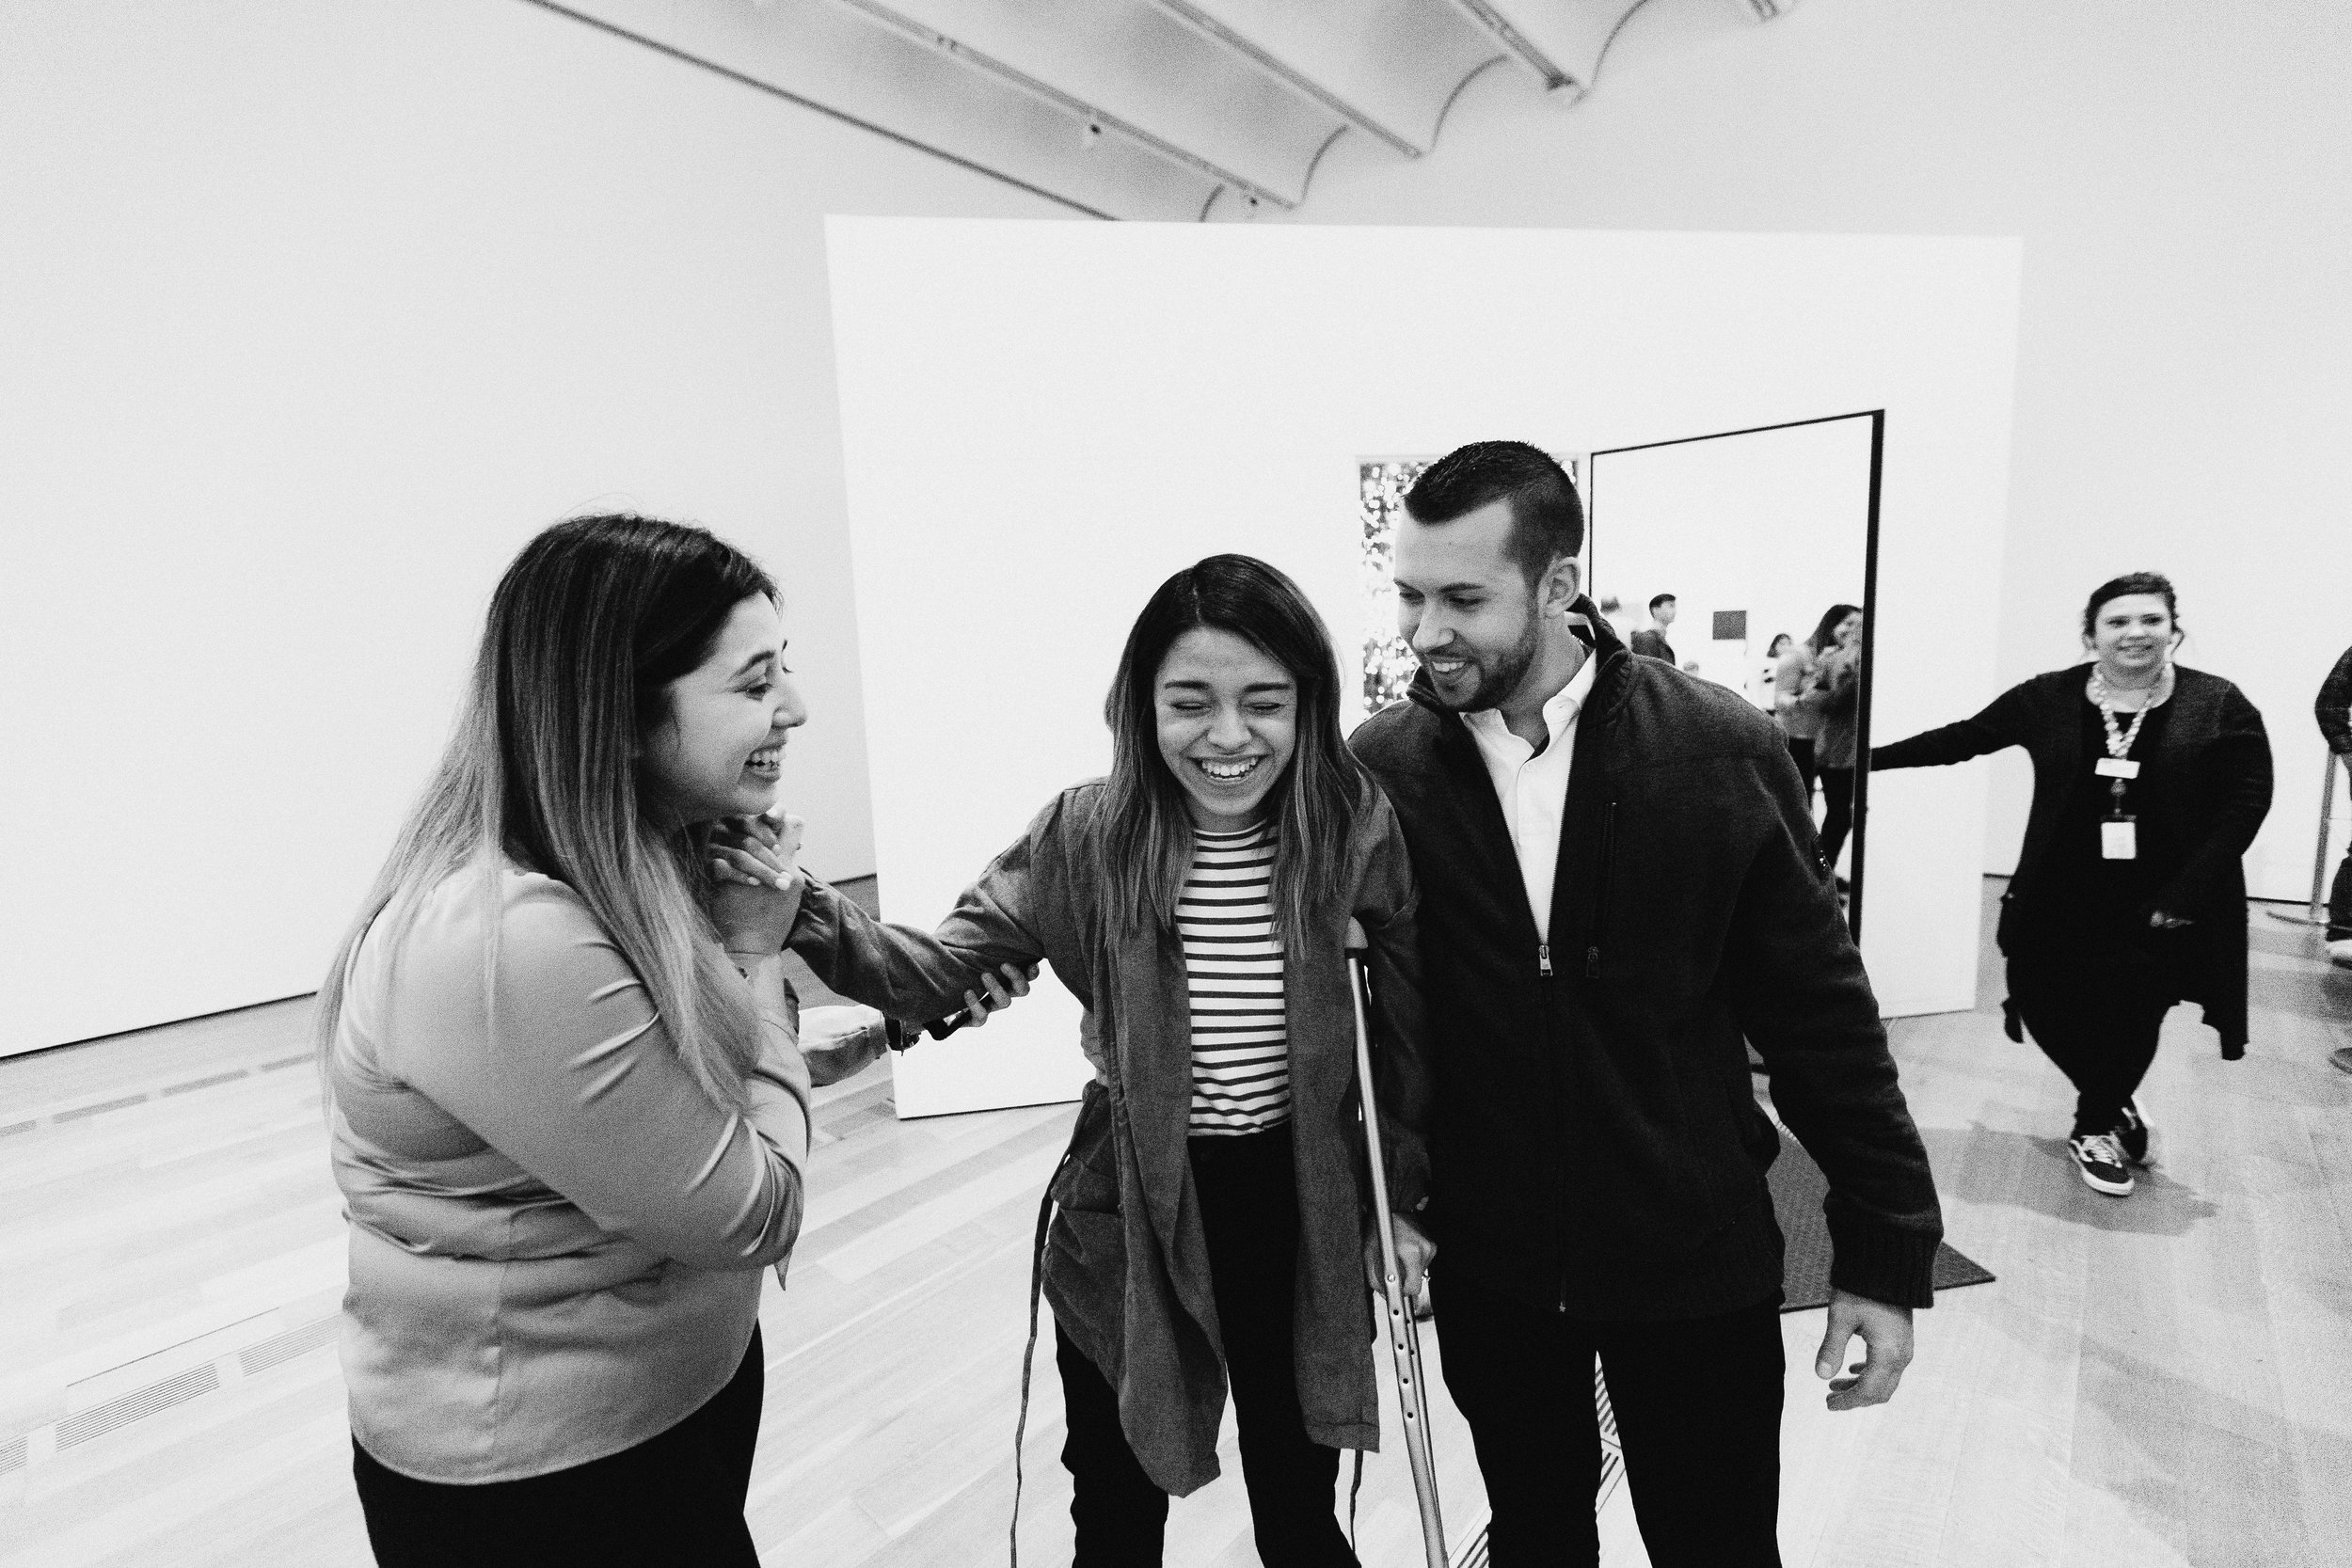 high_museum_infinity_mirrors_Yayoi_Kusama_proposal_amazing_atlanta_real_couple_engagement_ideas_epic_1033.jpg